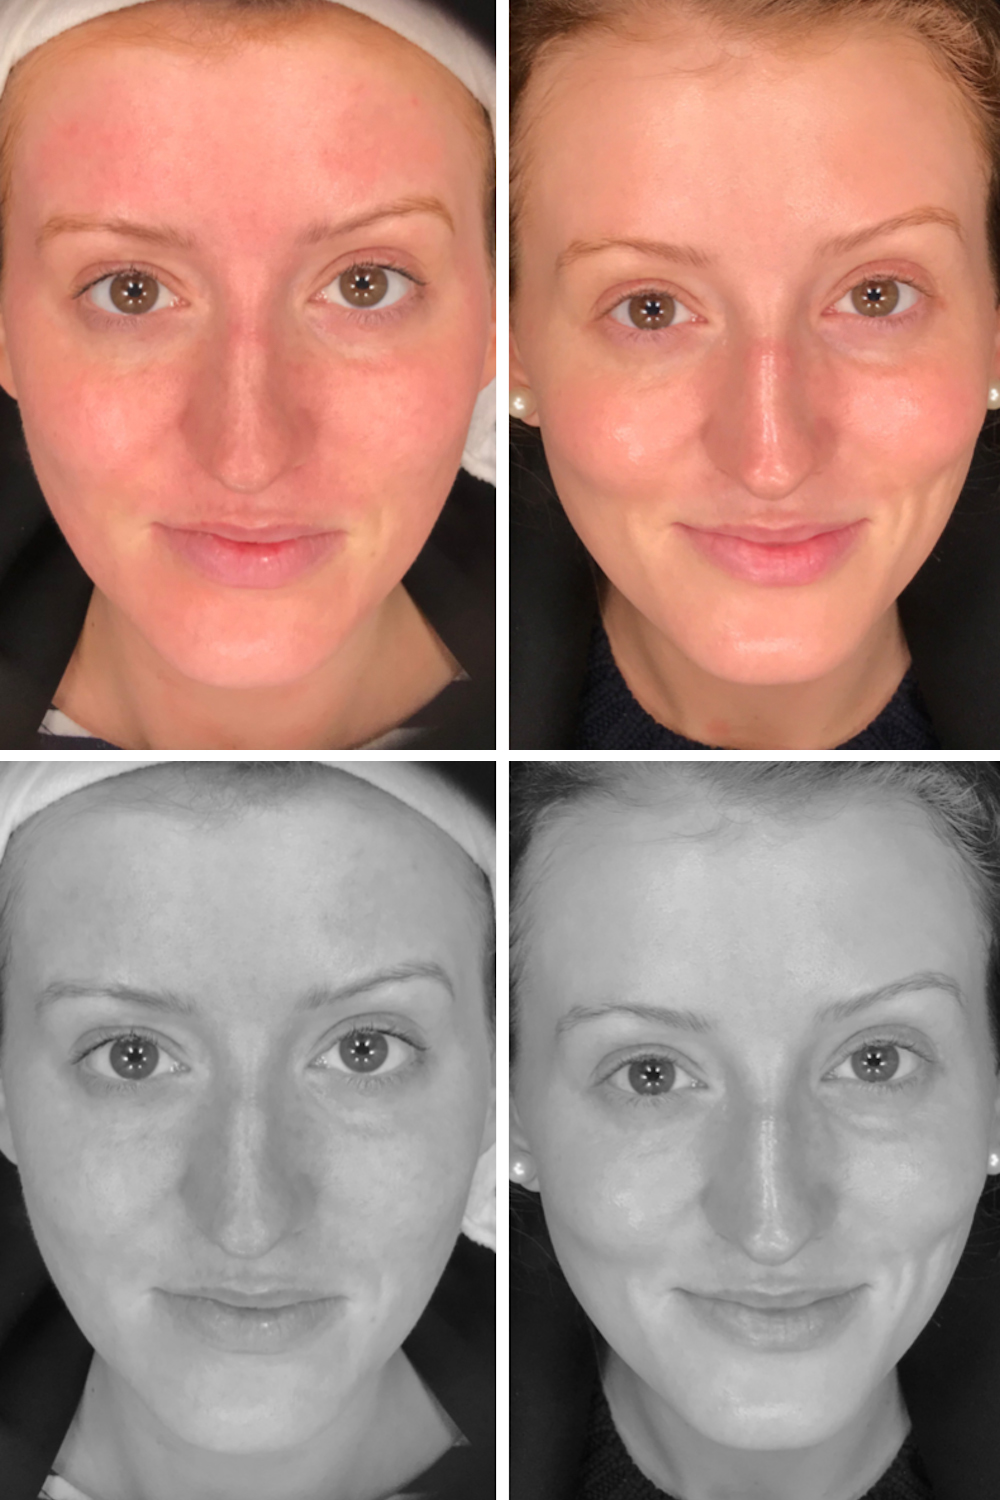 Facial exercise before and after photos